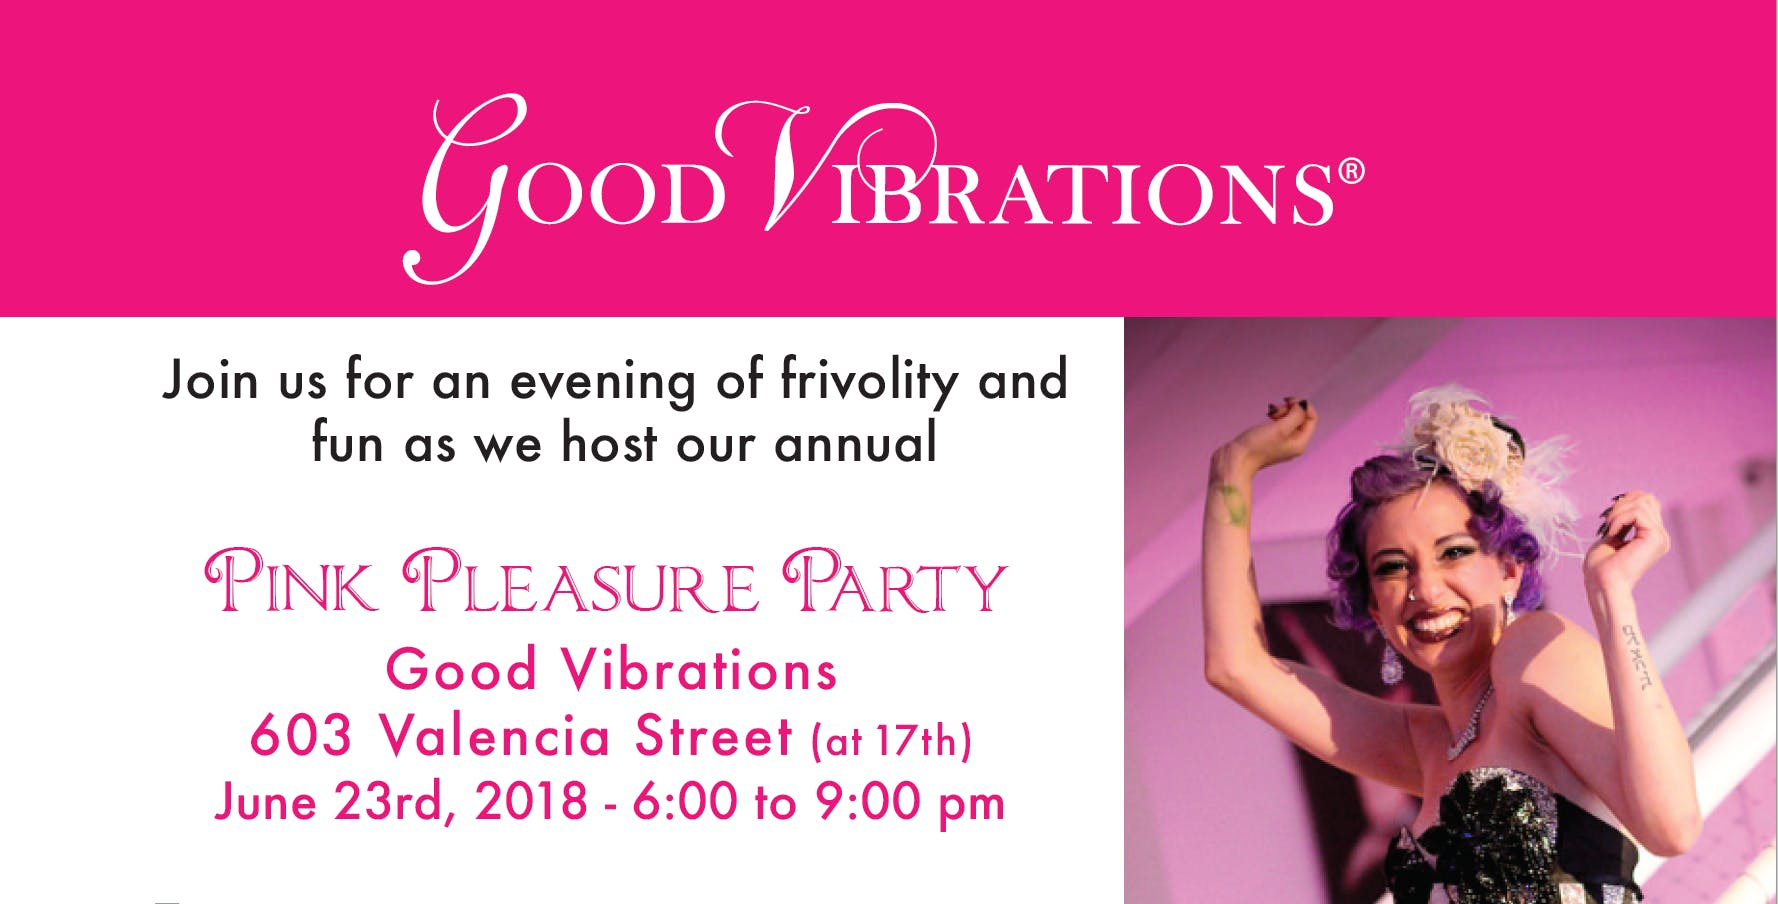 Annual Pink Pleasure Party at Good Vibrations